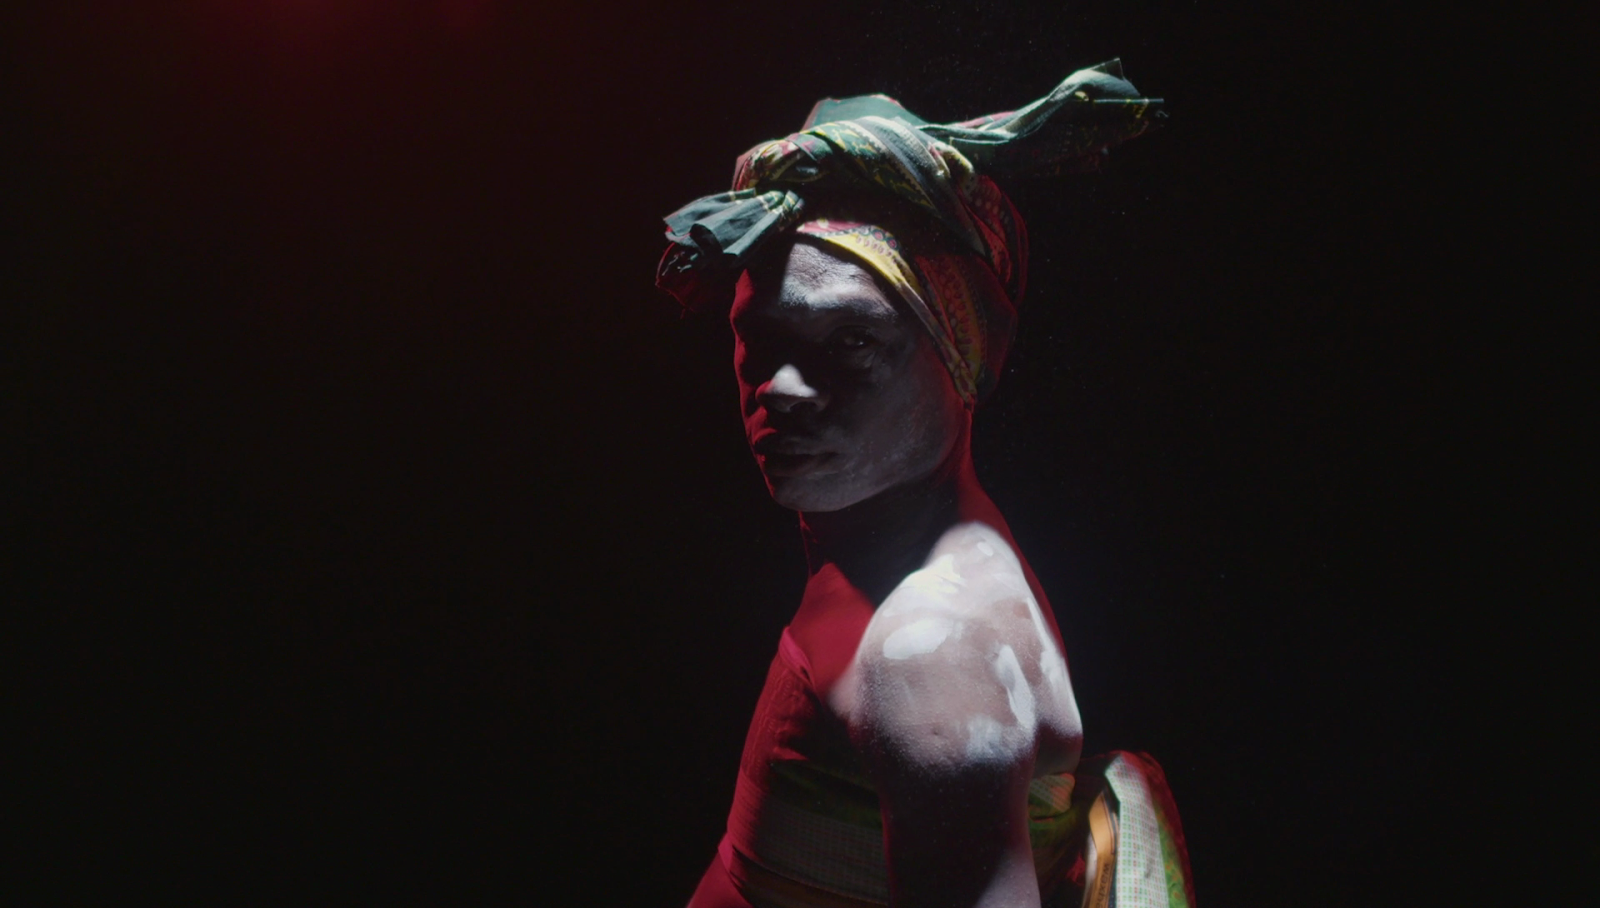 Mozambique Culture Celebrated In Documentary To Screen At Hot Docs